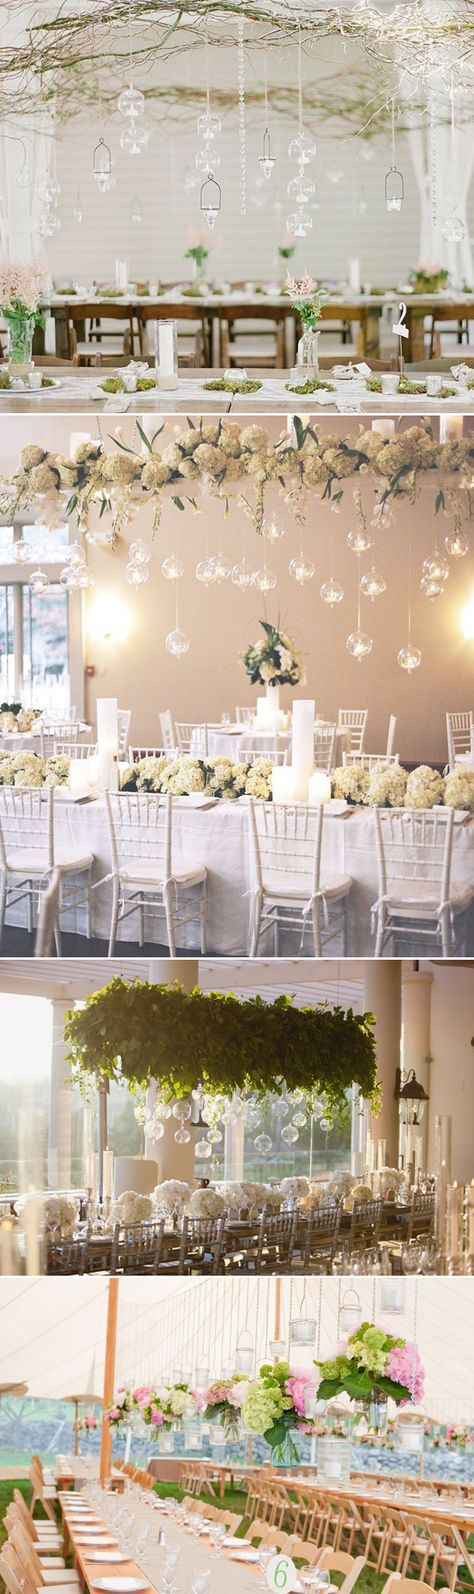 Beauty from Above – 27  Romantic Hanging Centerpiece Ideas - Glass and Jars!